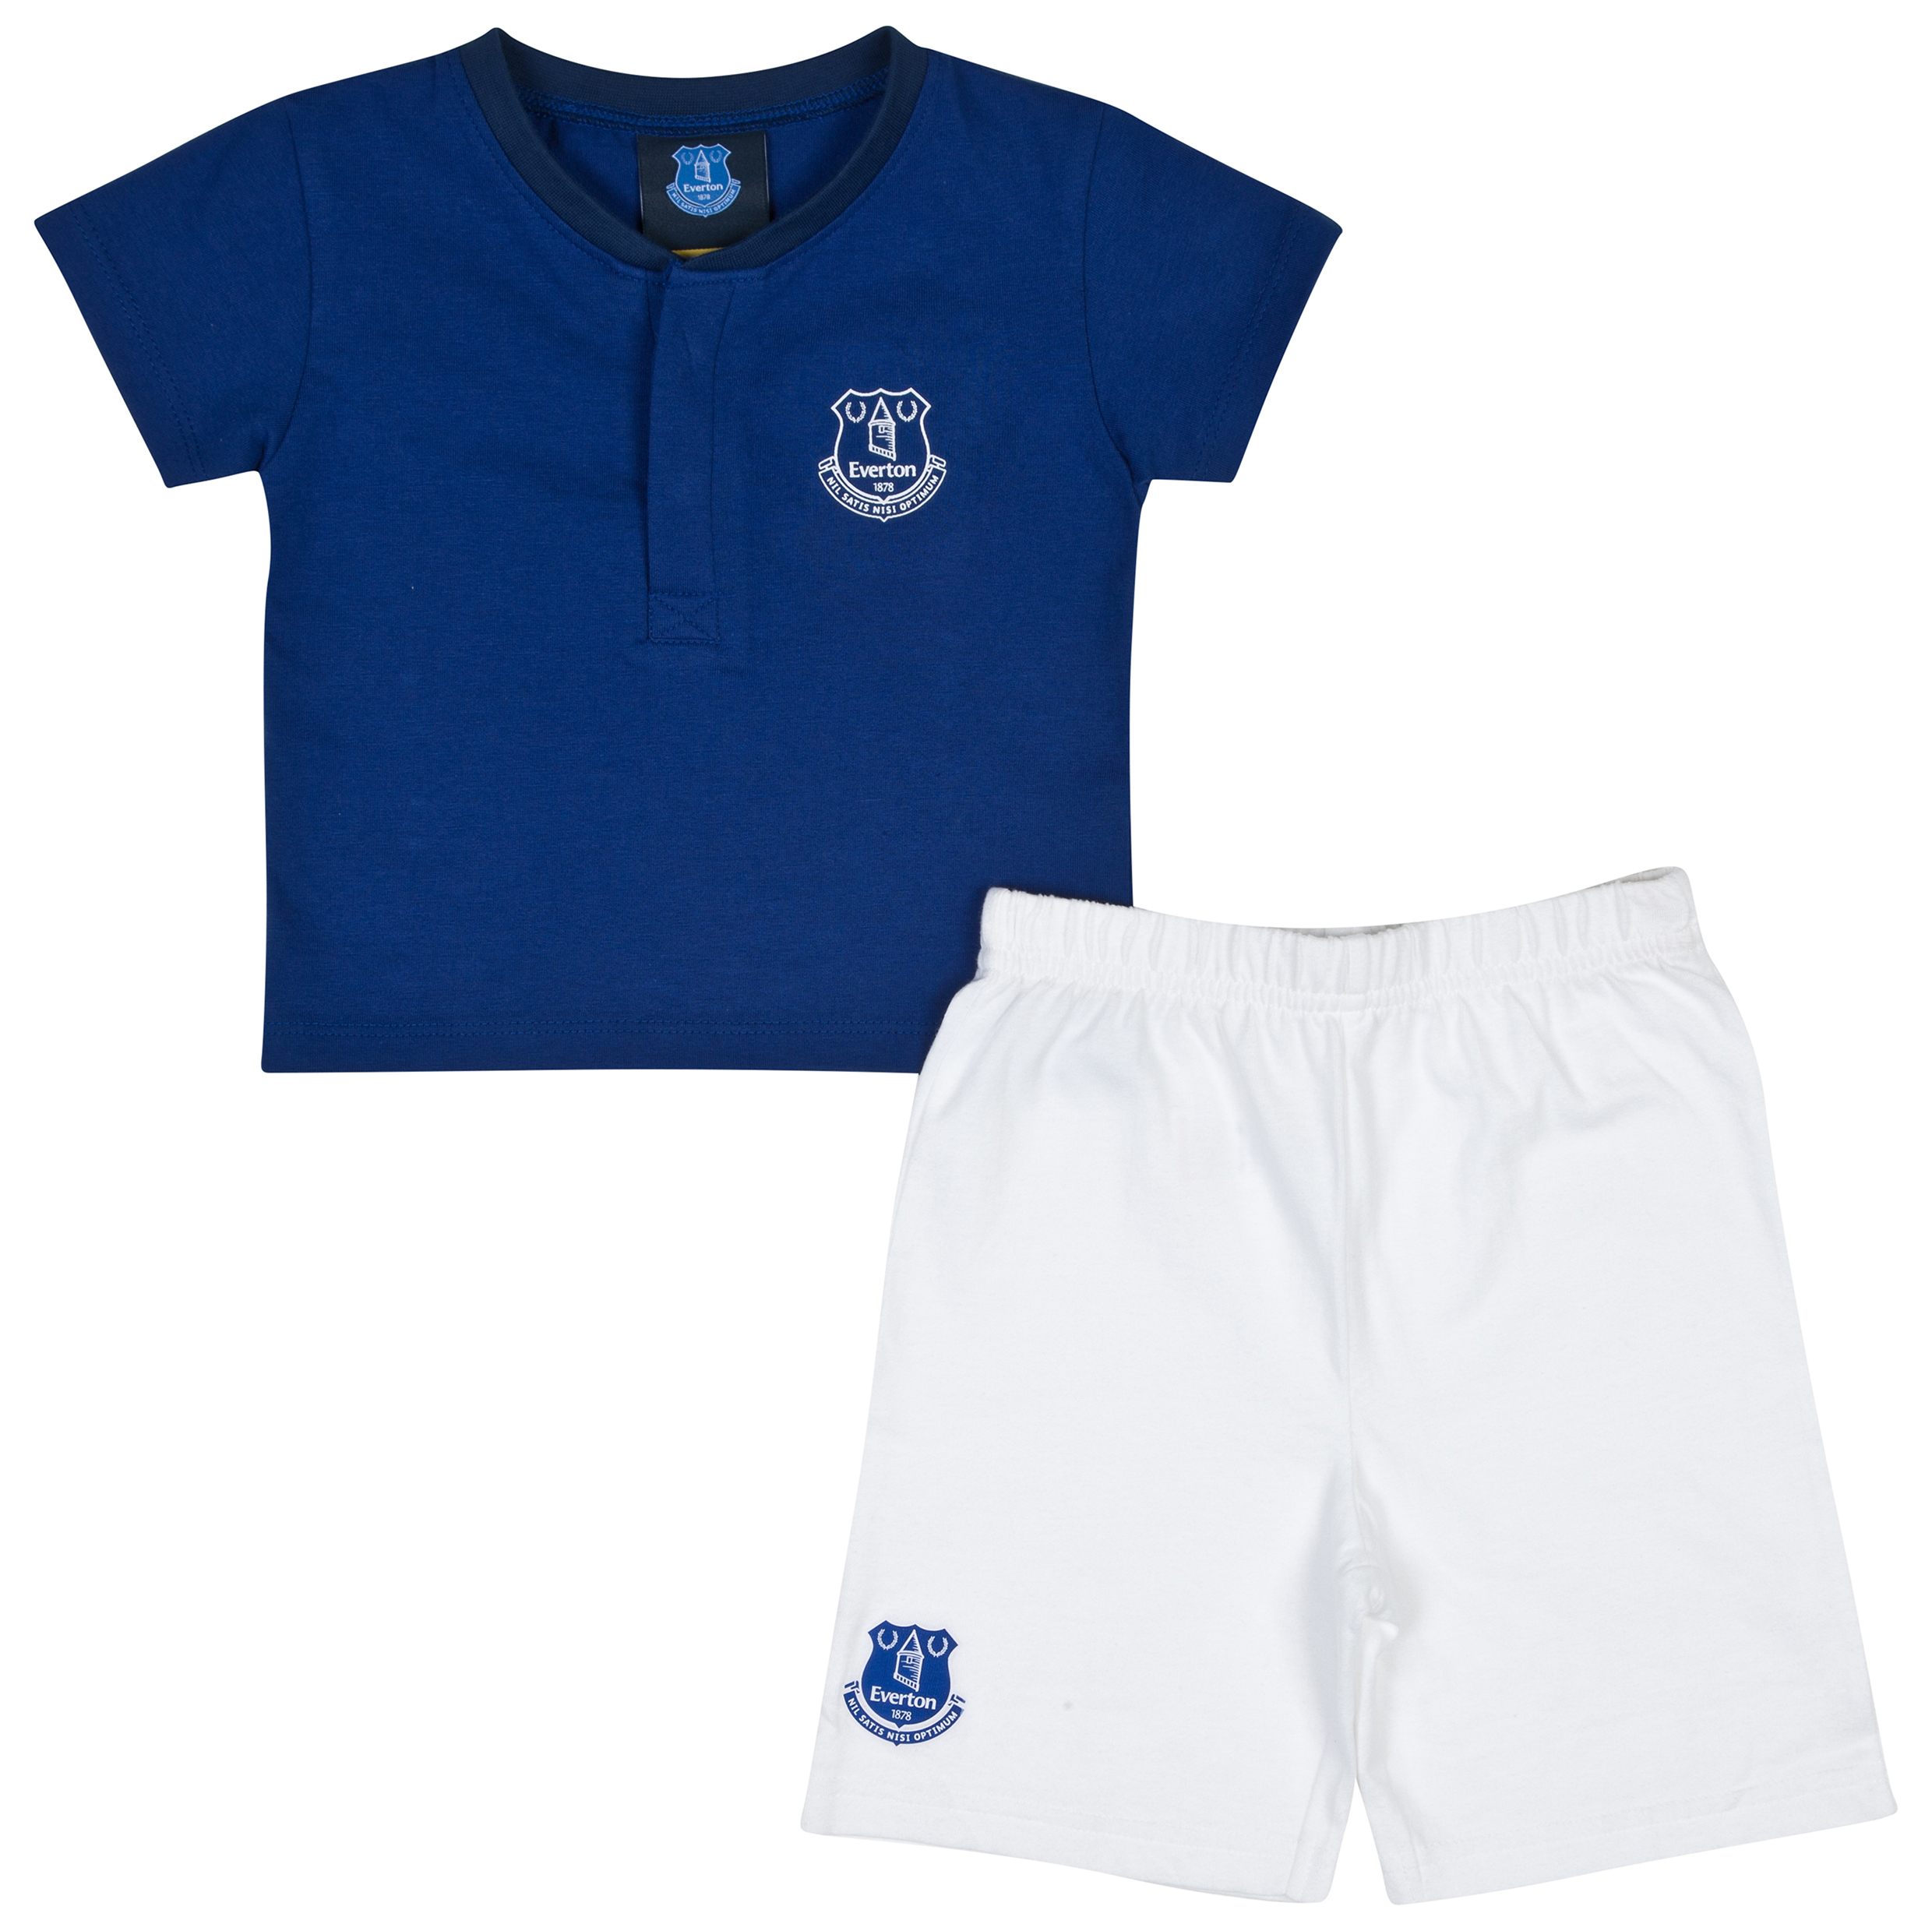 Everton 14/15 Kit Pyjamas - Everton Blue/White - Baby